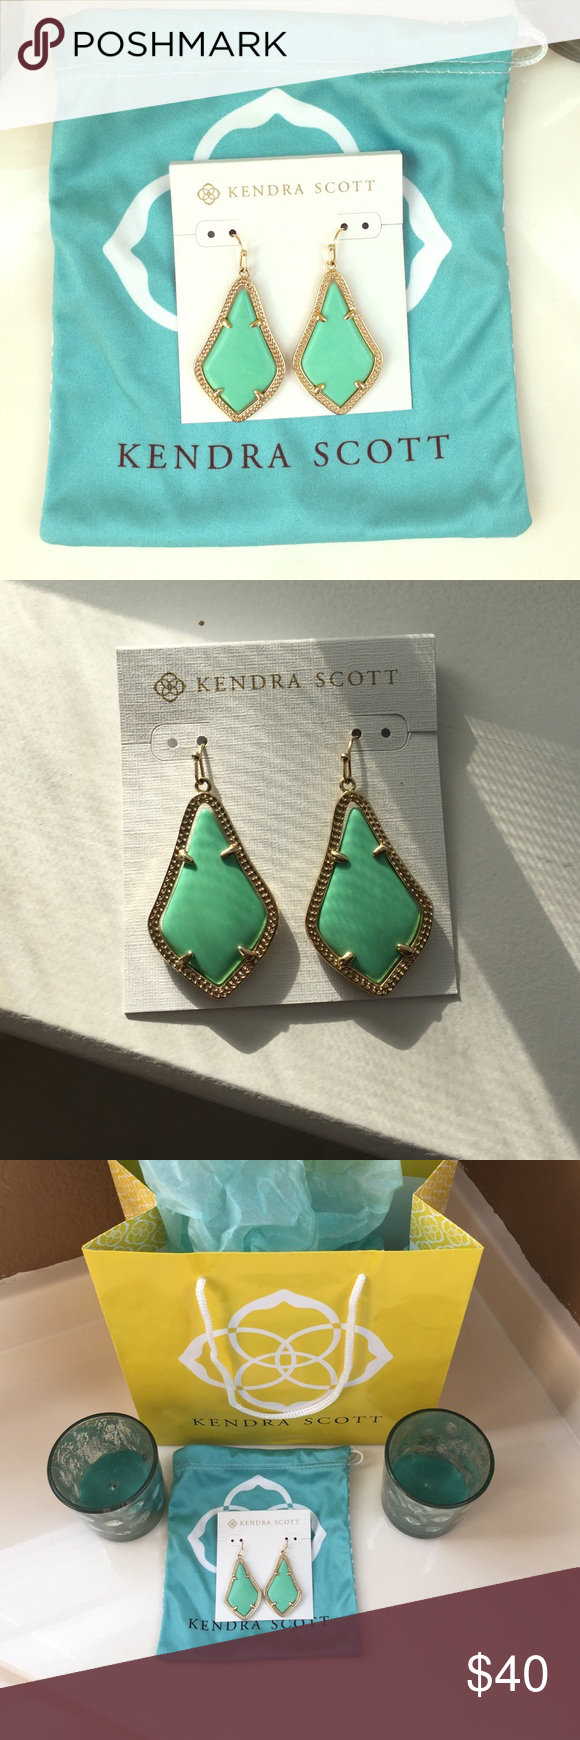 Mint Kendra Scott Alex earrings Perfect condition mint Kendra scott Alex earrings with gold hardware. These go perfect with anything and will dress up and black dress! Kendra Scott Jewelry Earrings